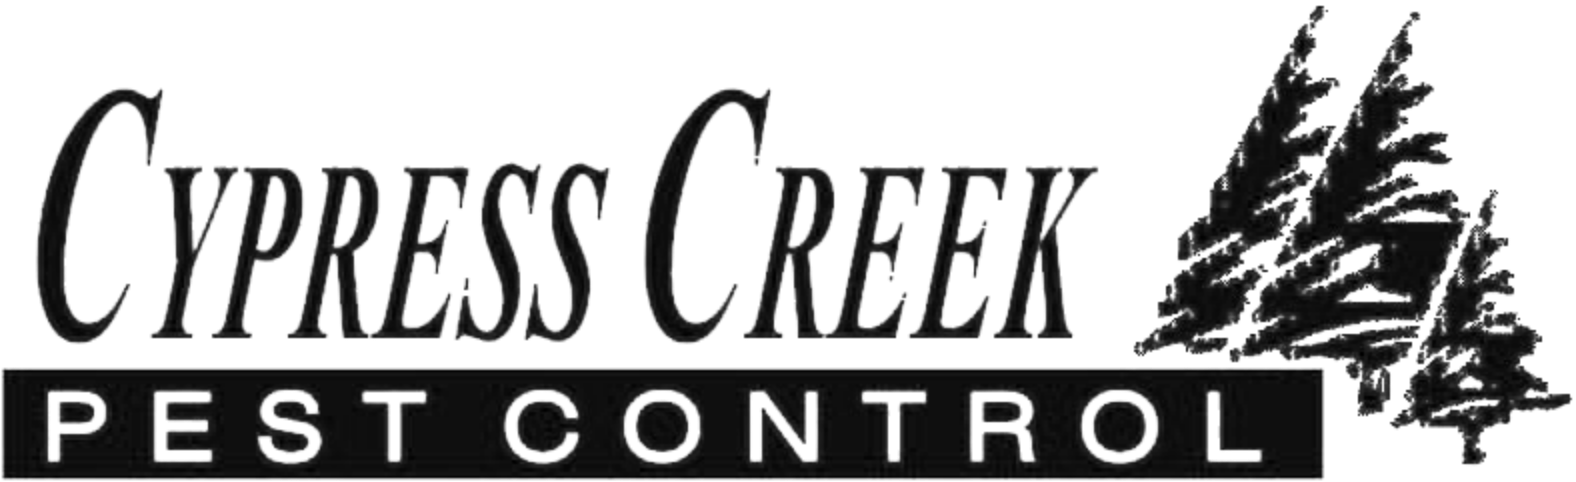 cypress creek pest control